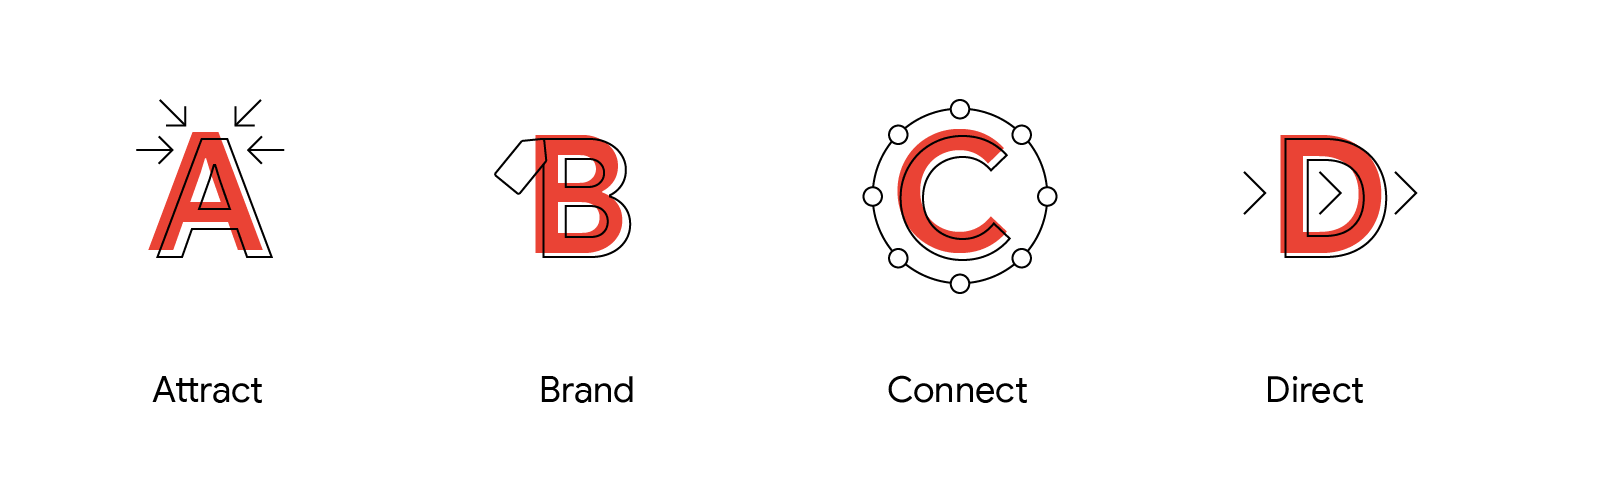 YouTube Attract Brand Connect Direct